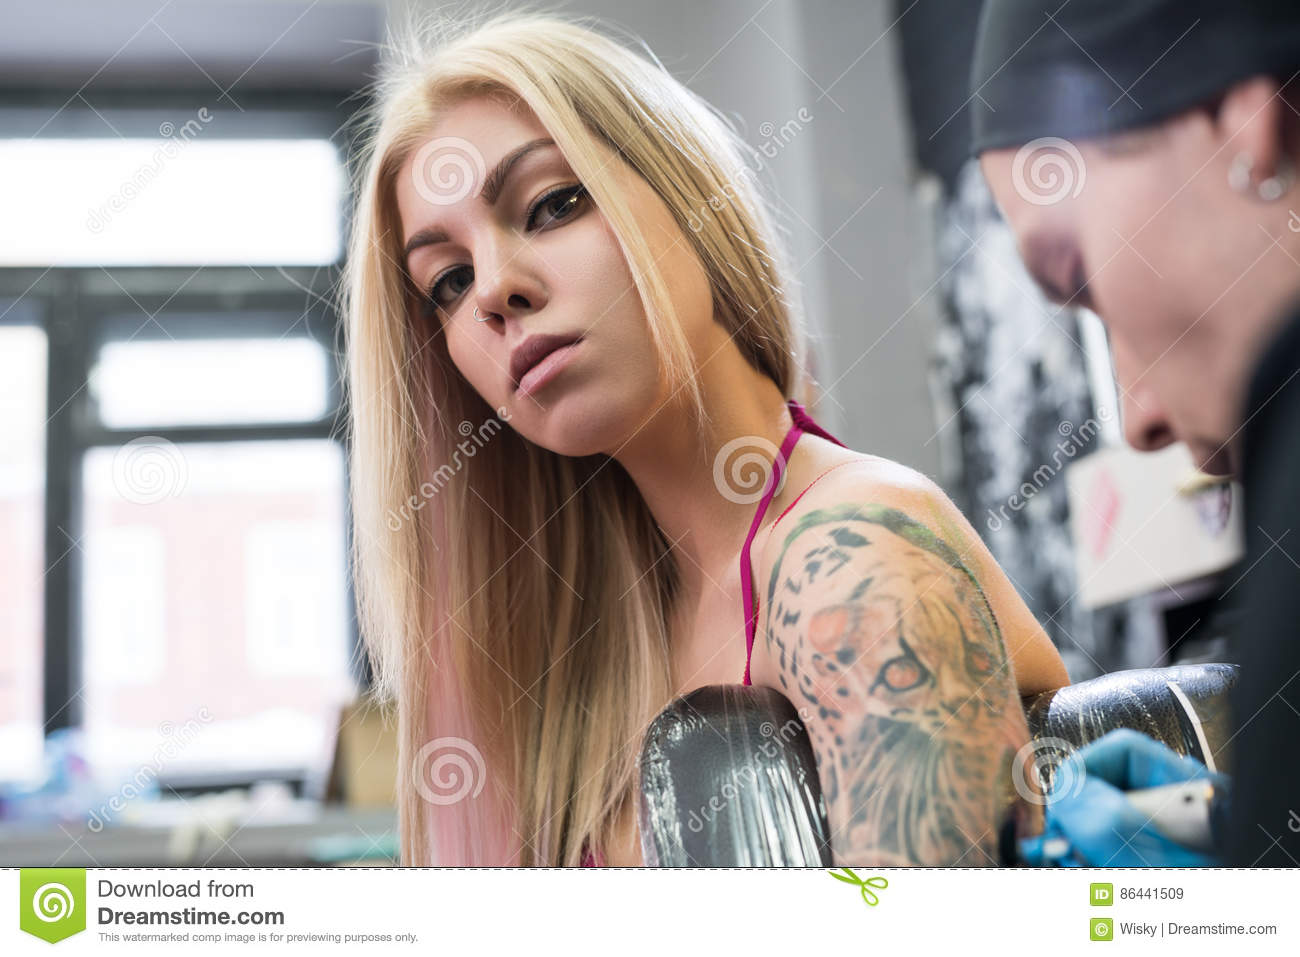 Sexy blonde with tattoos